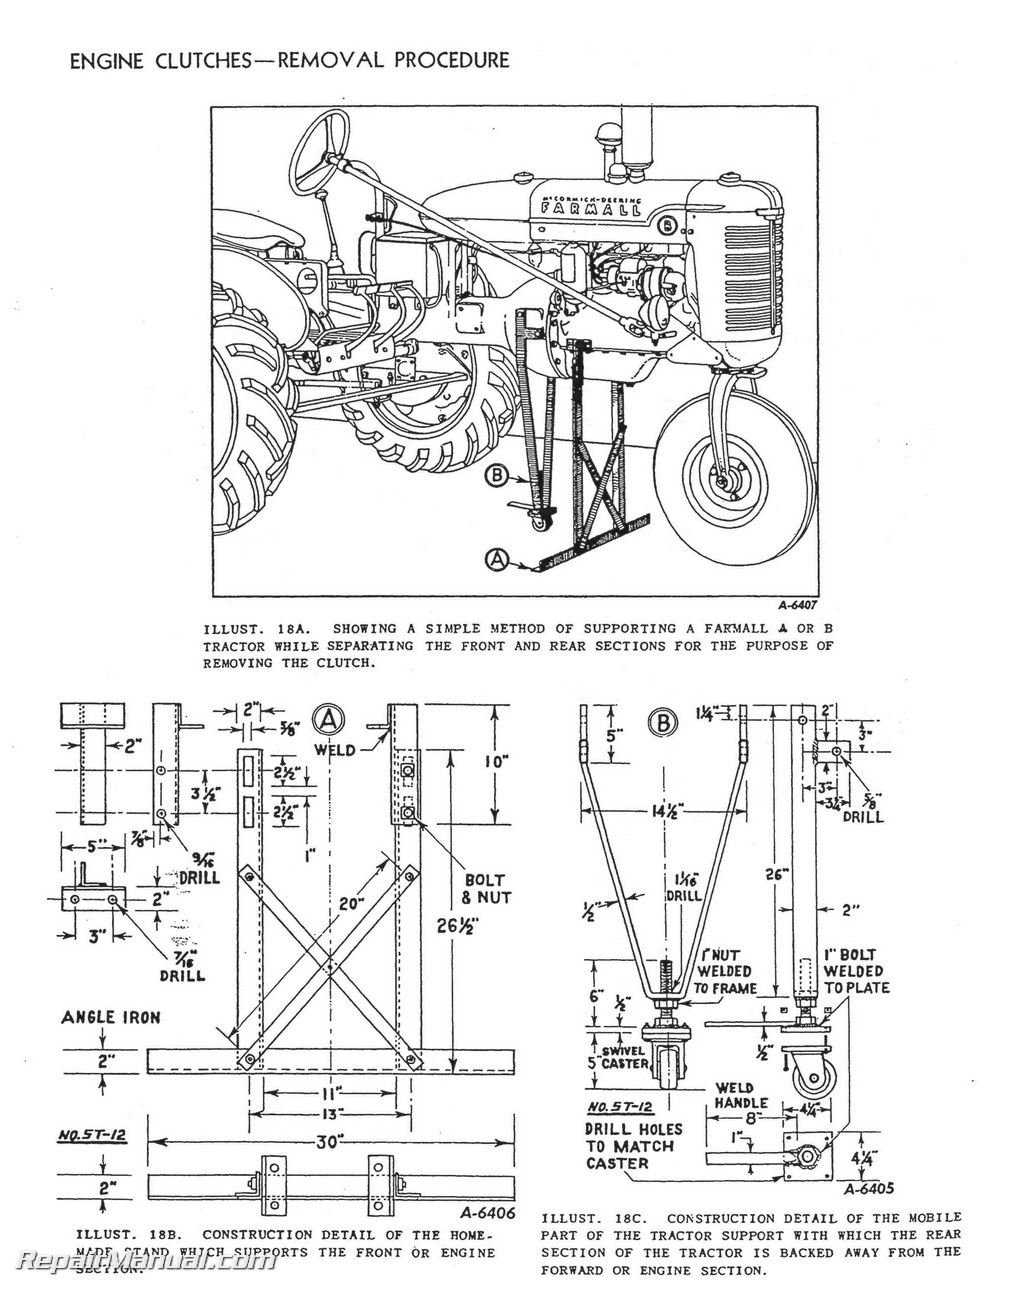 1947 farmall cub governor diagram